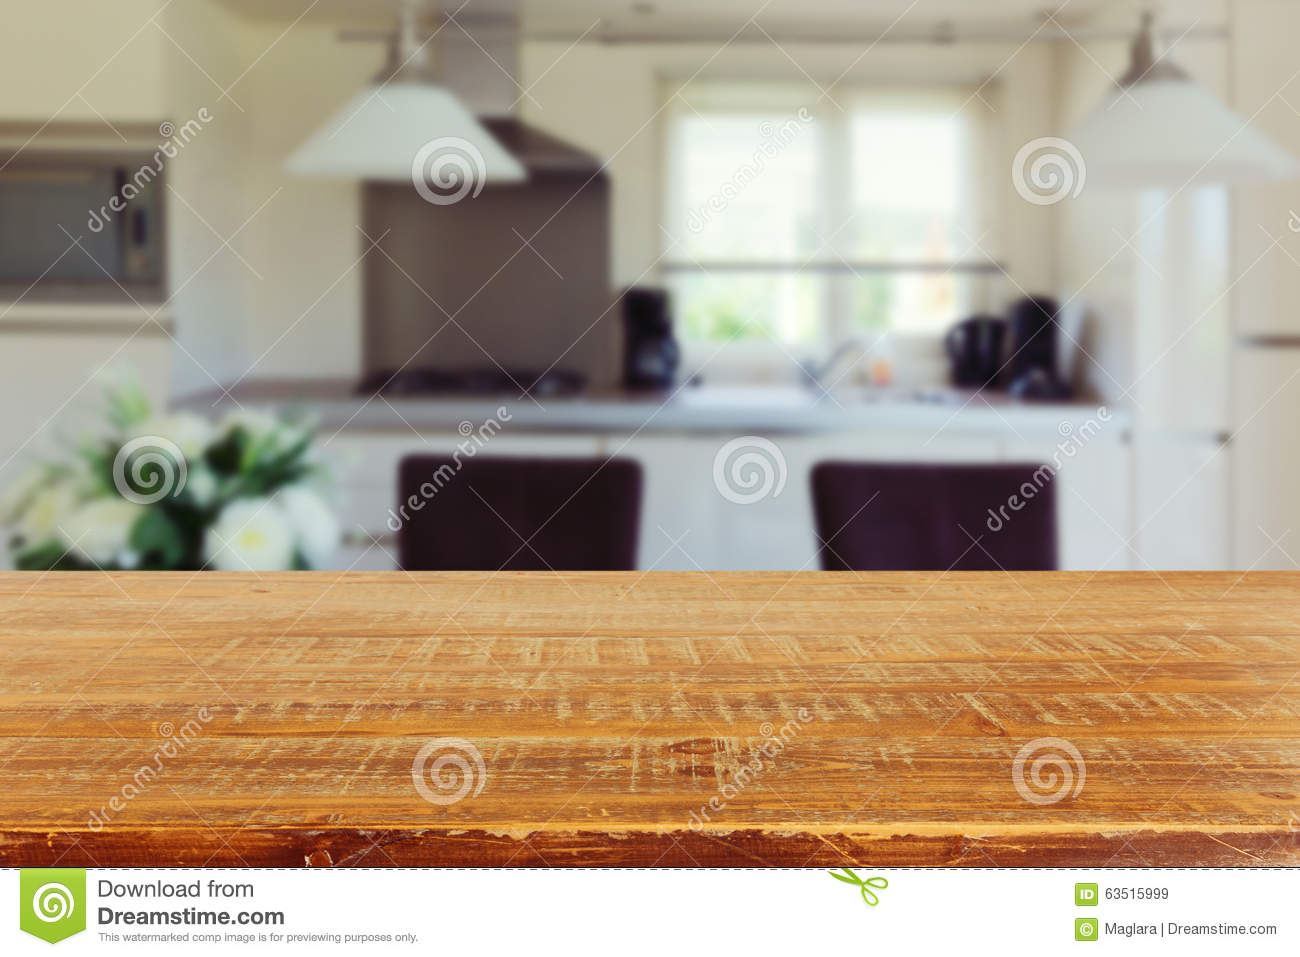 Kitchen Table Background Entrancing Interior Background With Empty Kitchen Table Stock Photo  Image Design Inspiration